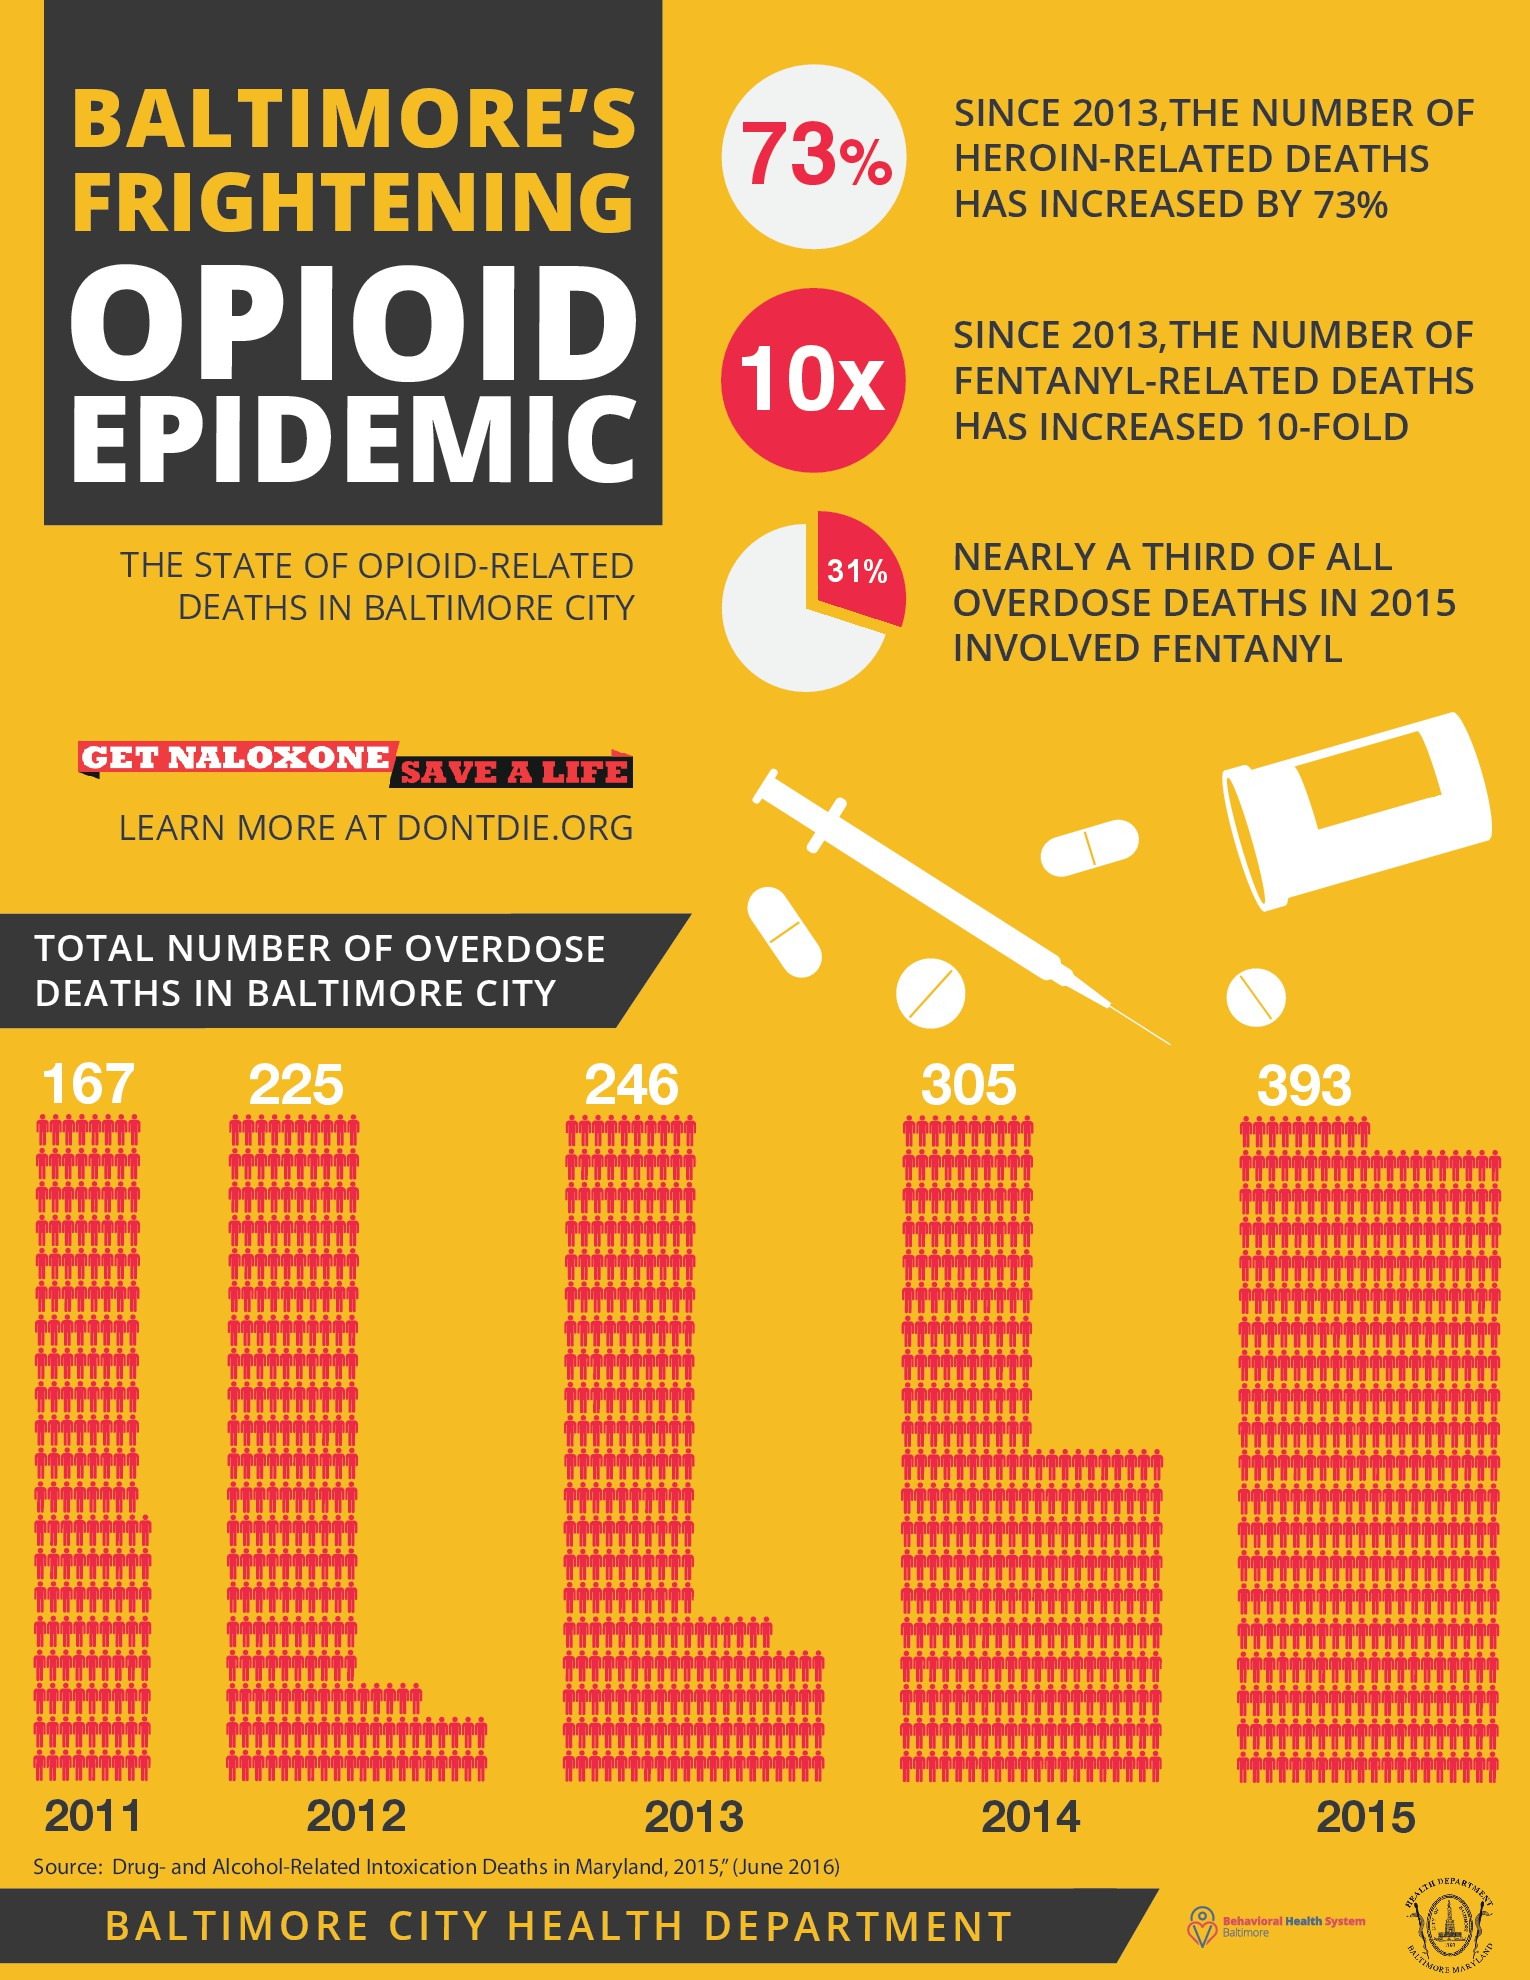 Baltimore City's opioid-related overdoses